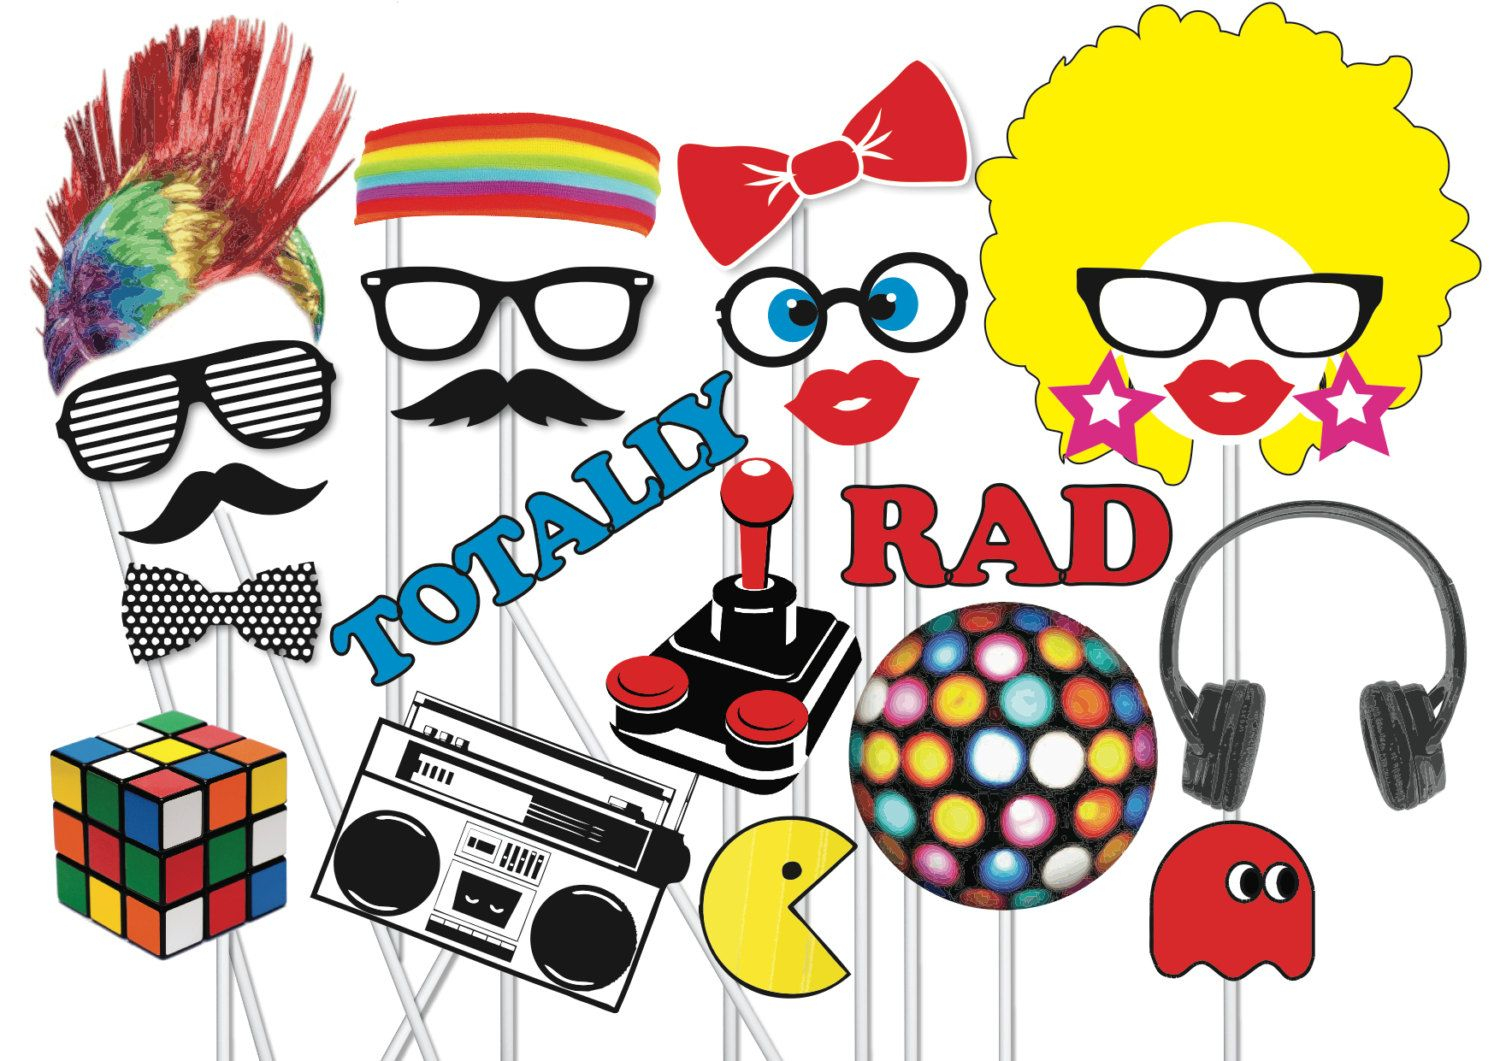 80's Retro Photobooth Party Props Set 22 Piecethequirkyquail - 80S Photo Booth Props Printable Free